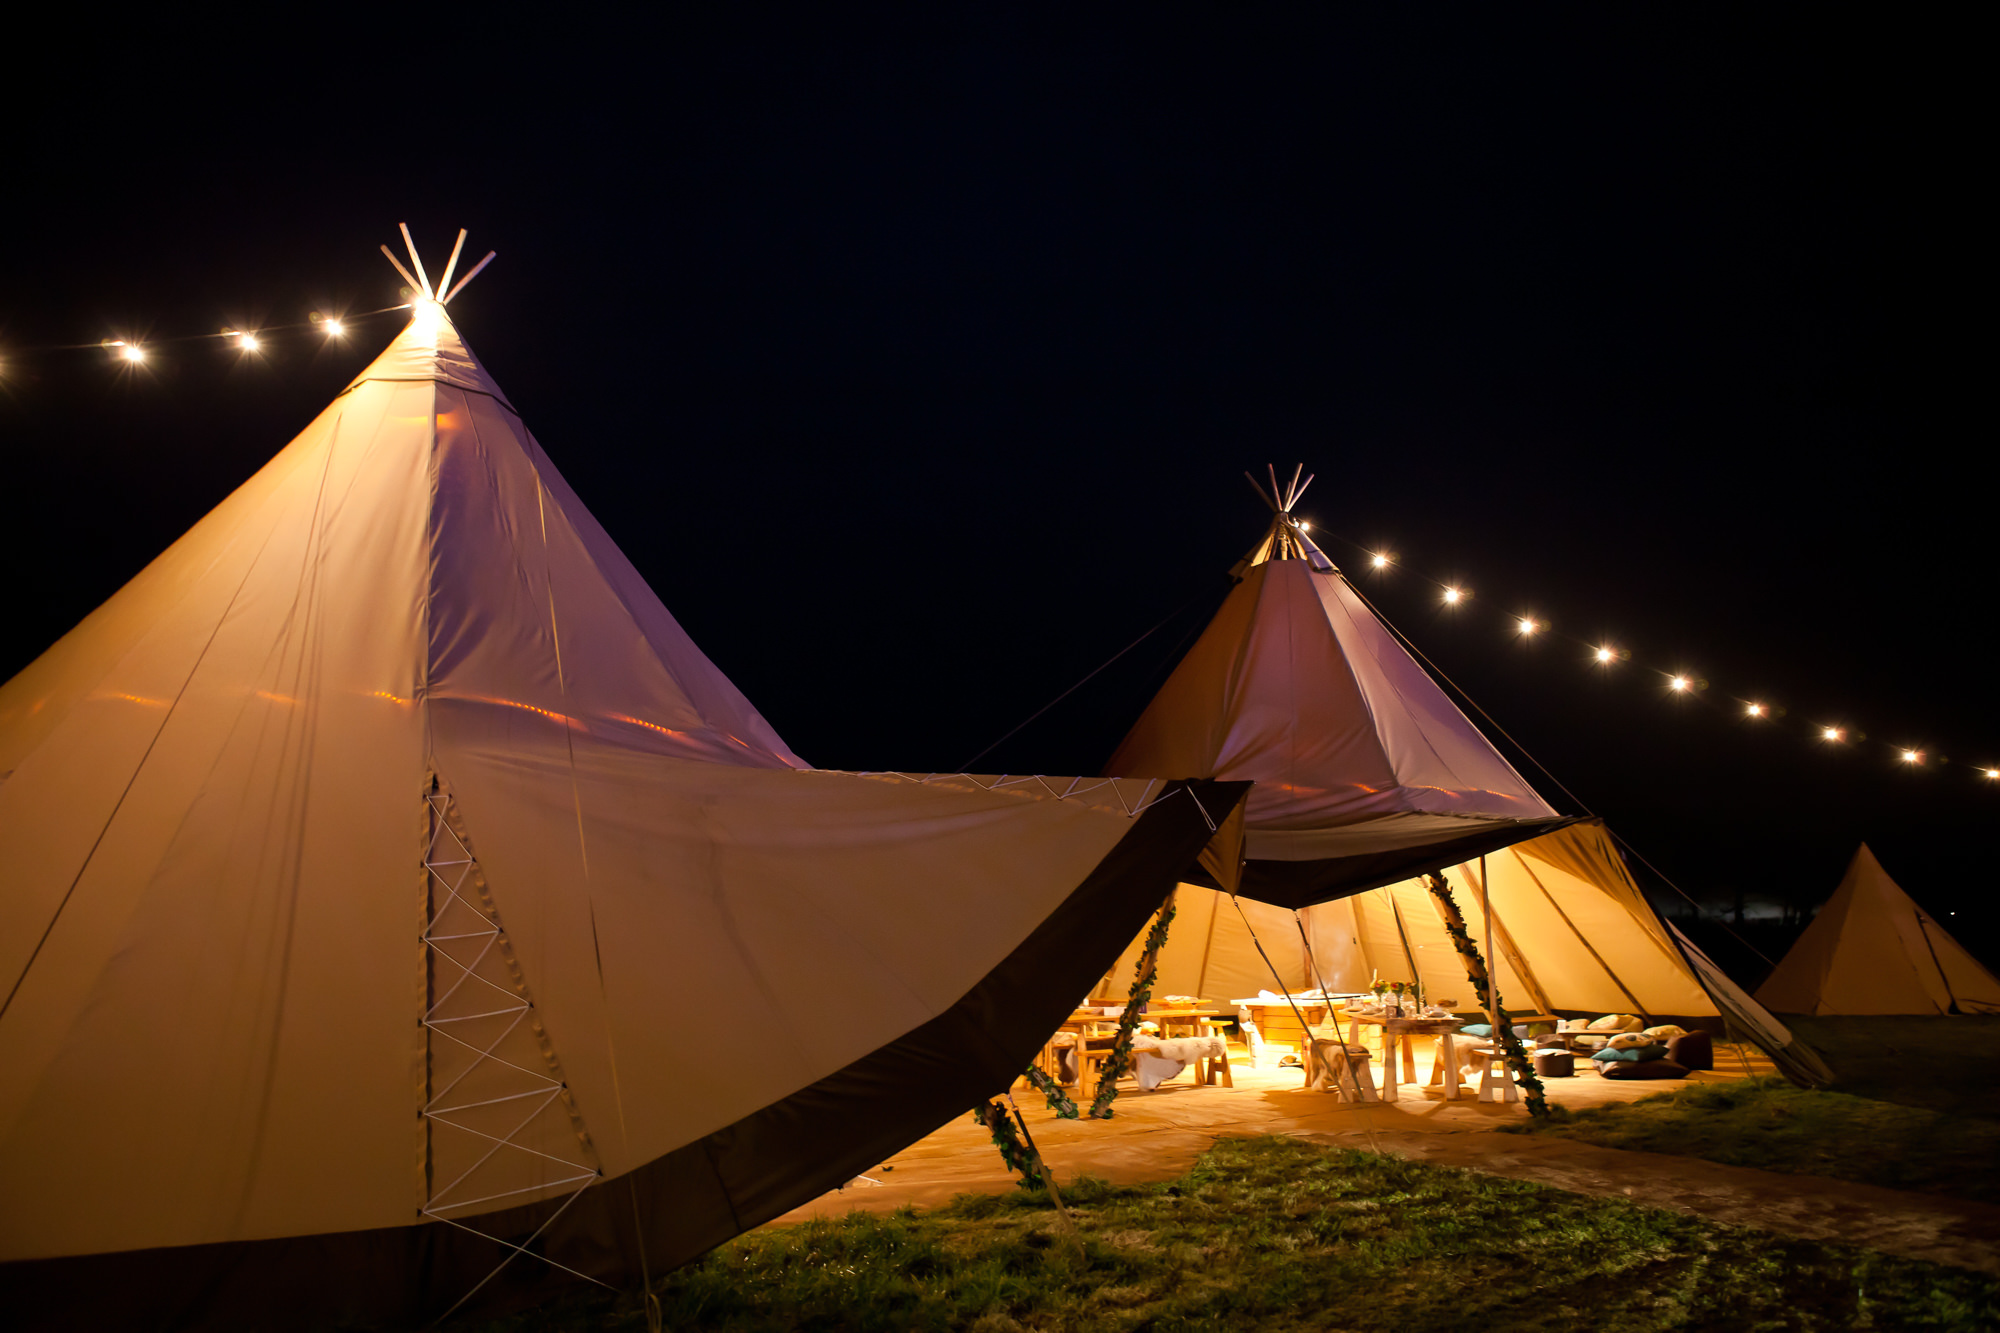 Copy of Copy of Copy of Tipi ready for guests